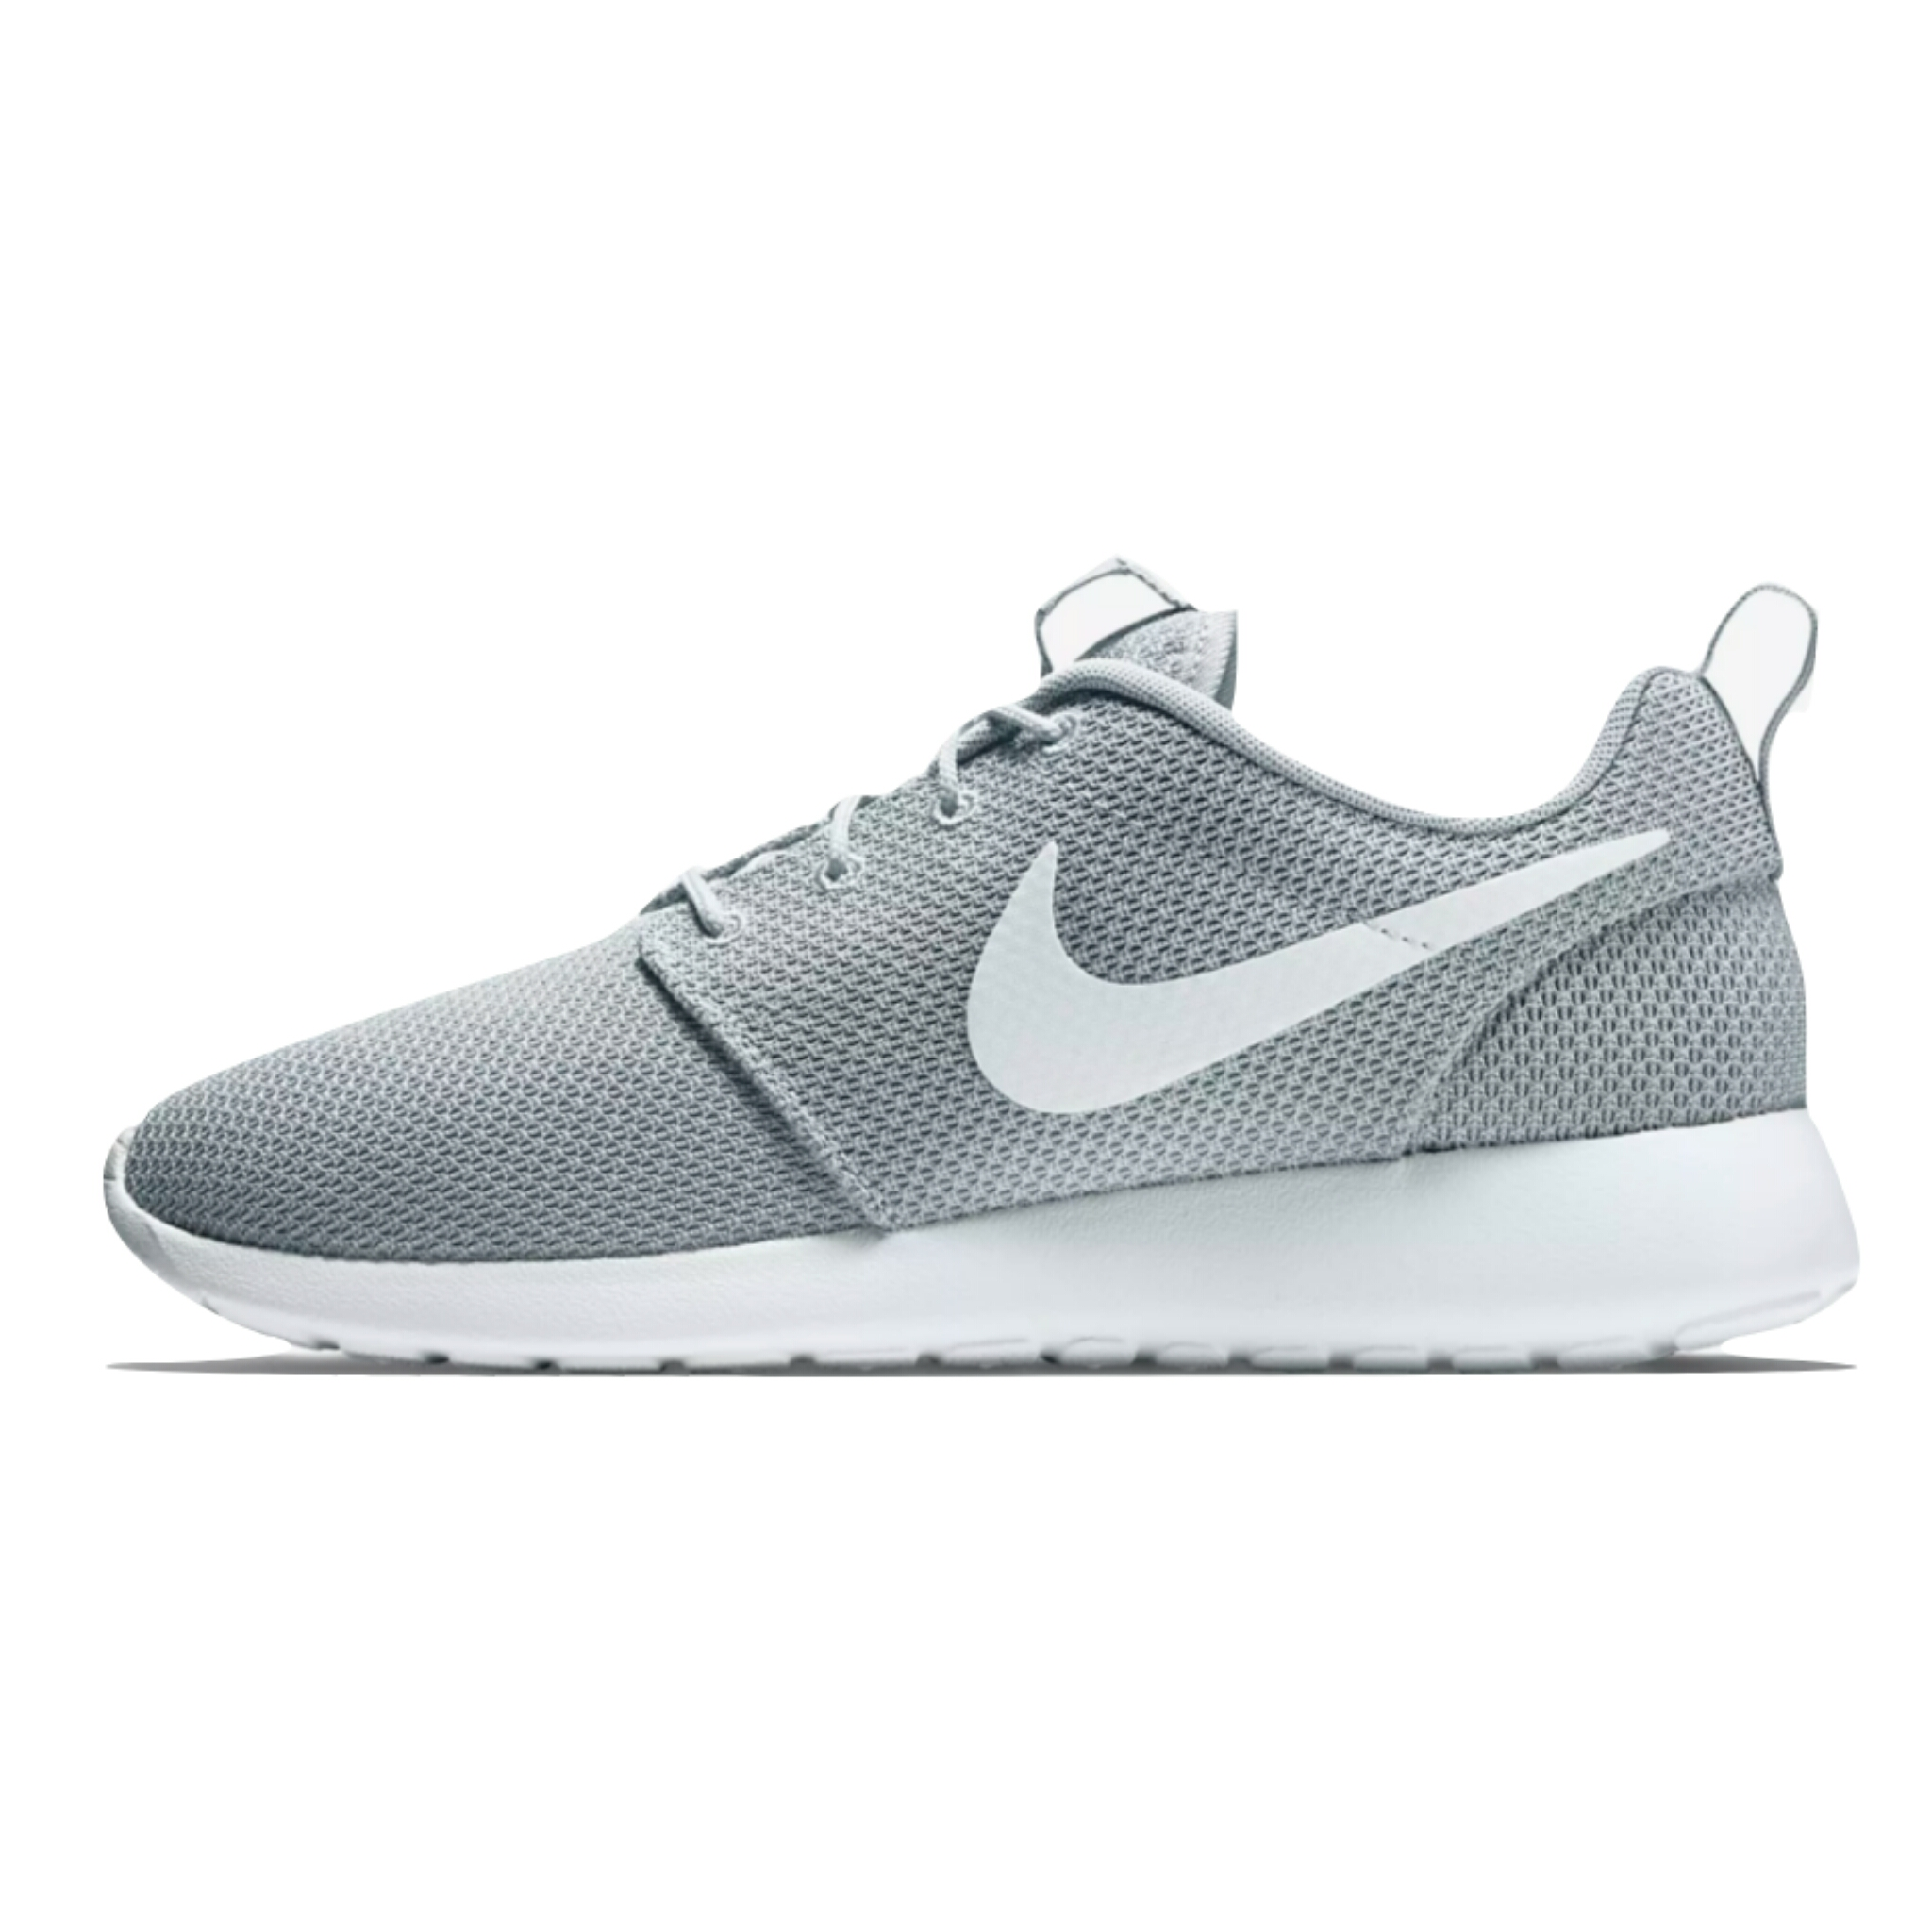 8278dc65d Nike Roshe One Wolf Grey - Buy Shoes Online In Pakistan